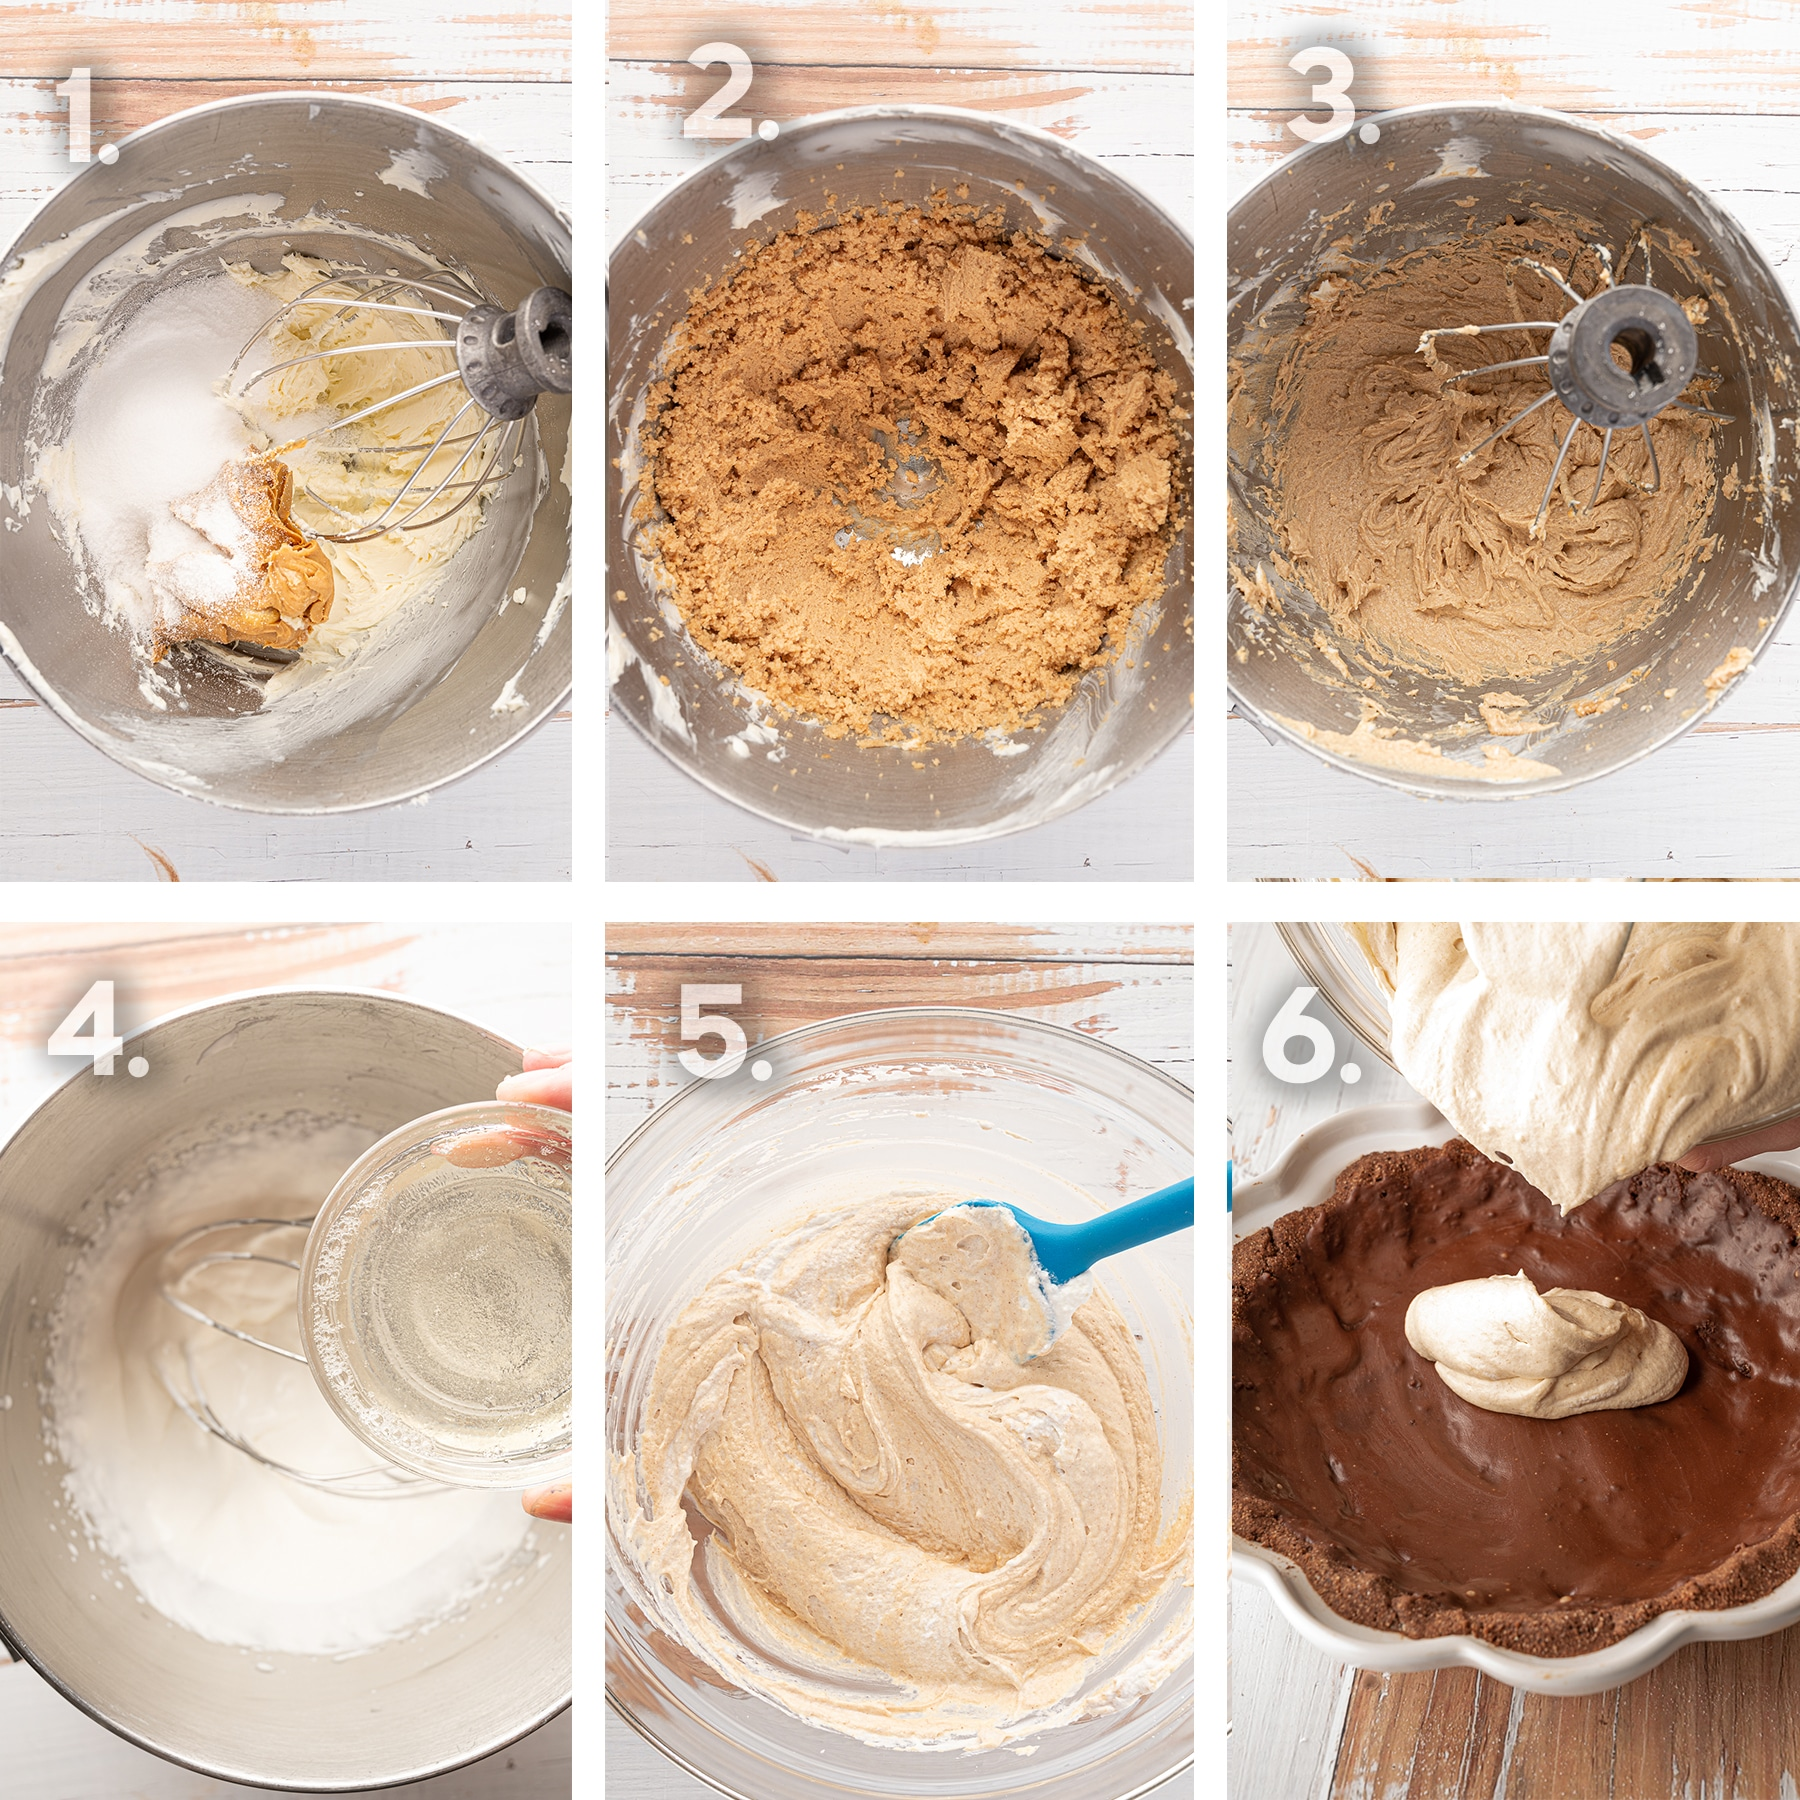 6 step photograph of the peanut butter pie filling from whipping the cream, folding in the peanut butter mixture and pouring into the prepared crust.